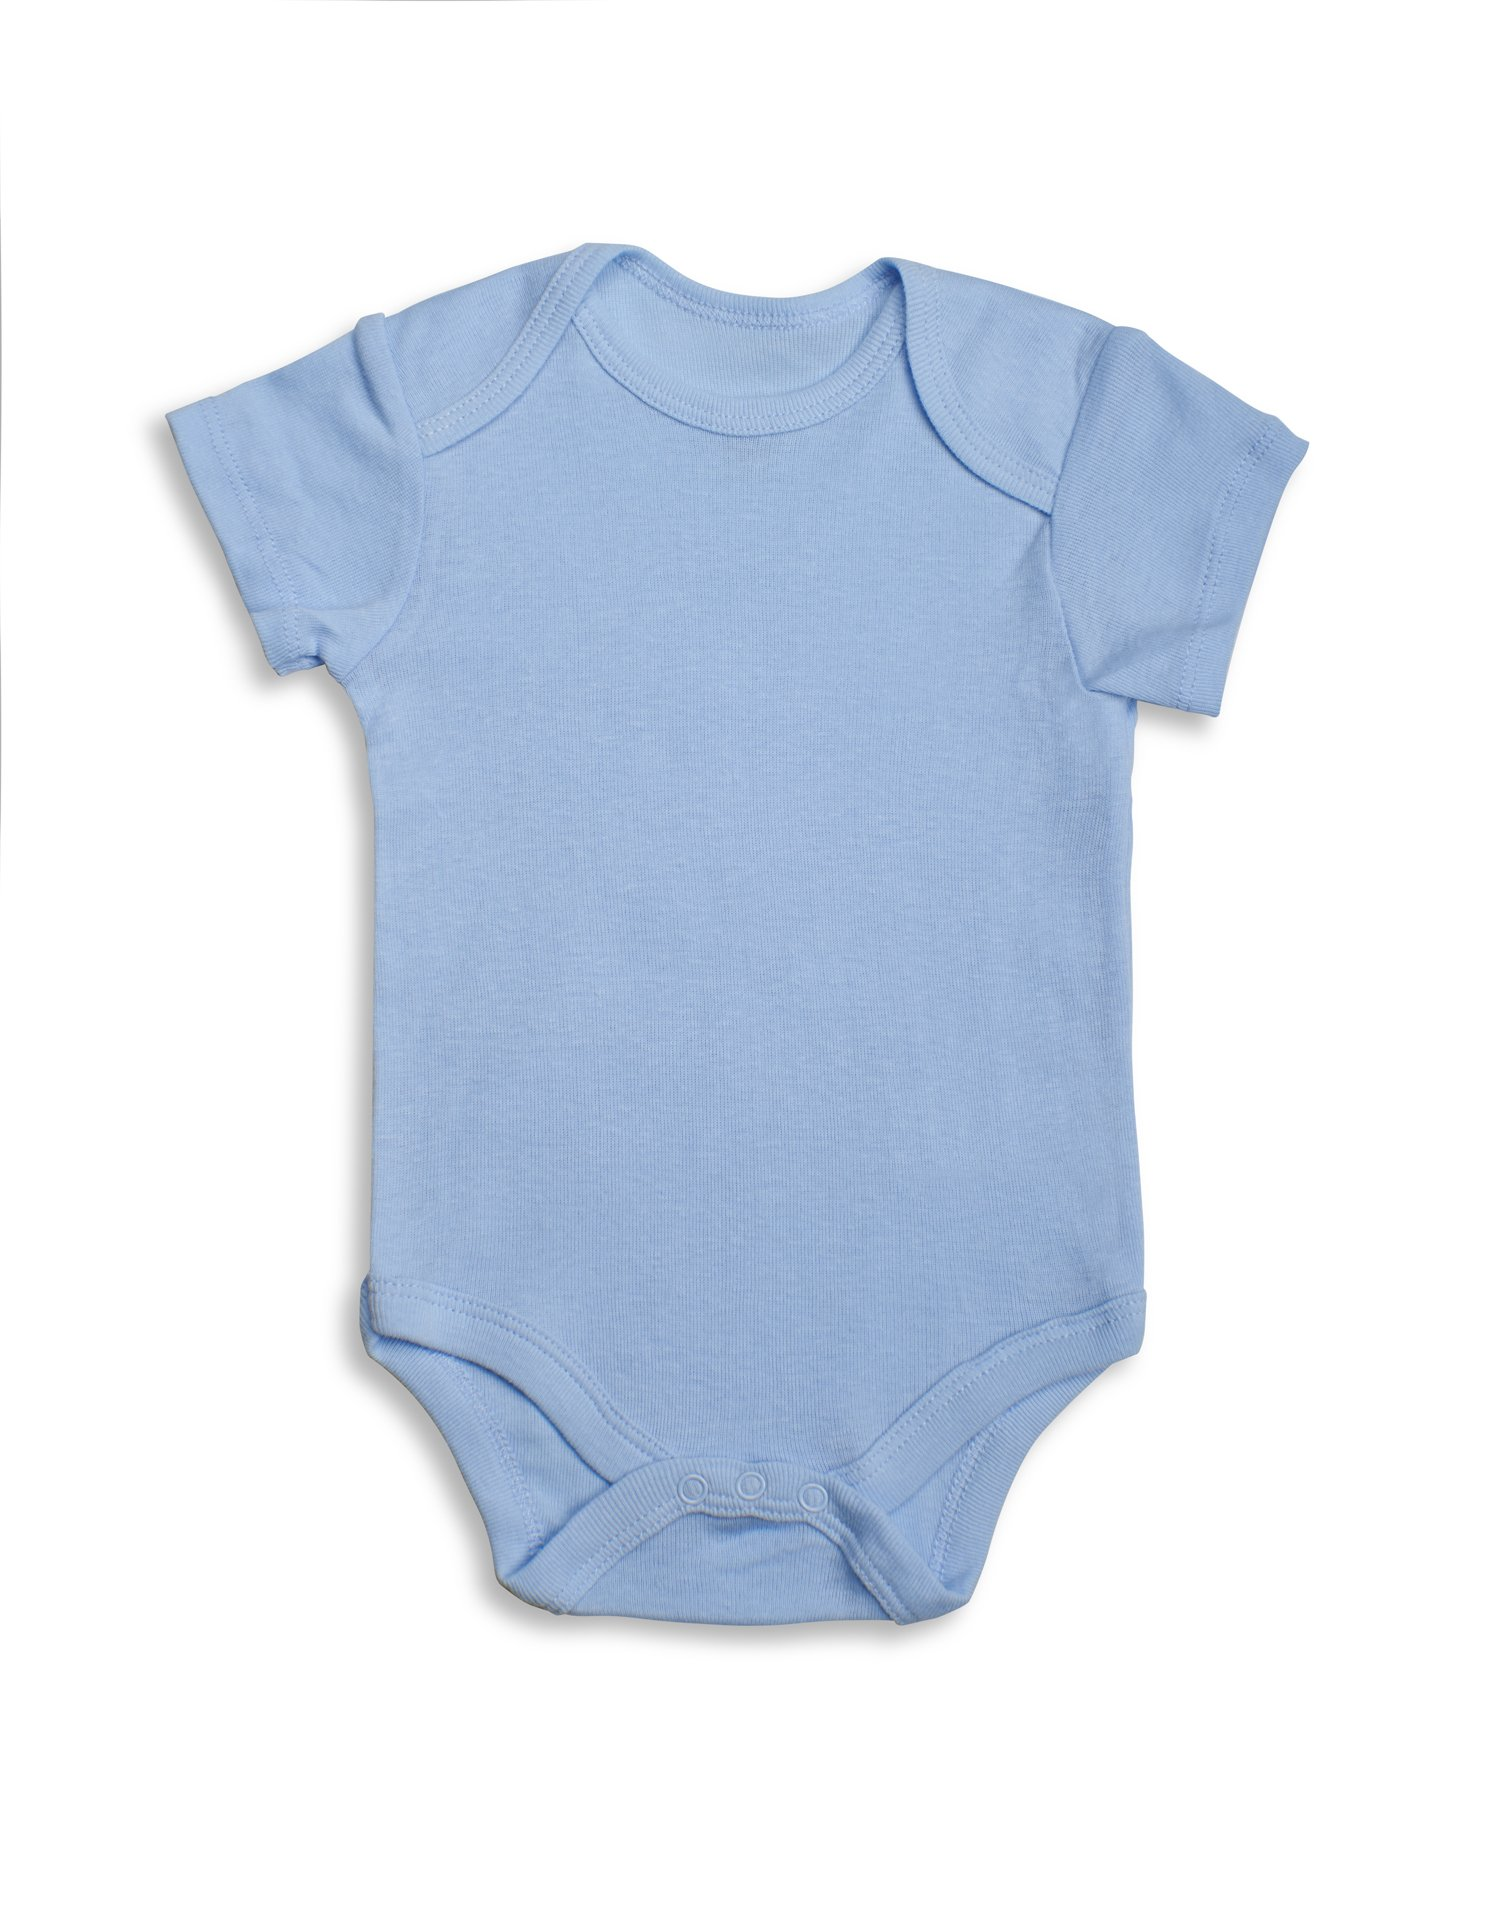 5-Pack Newborn Bodysuit Infant Clothes Lily and Page Jumper Baby Boy